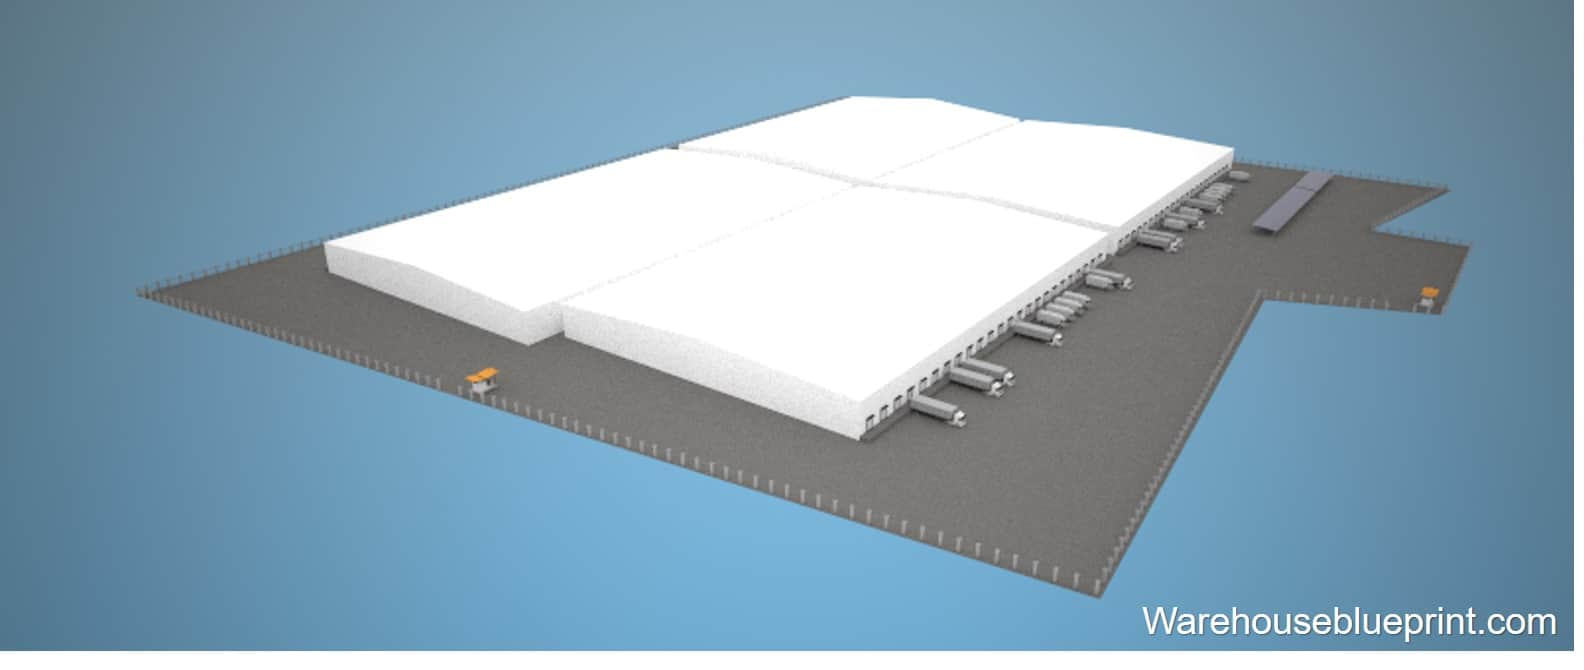 Warehouse Layout 4 - rendered